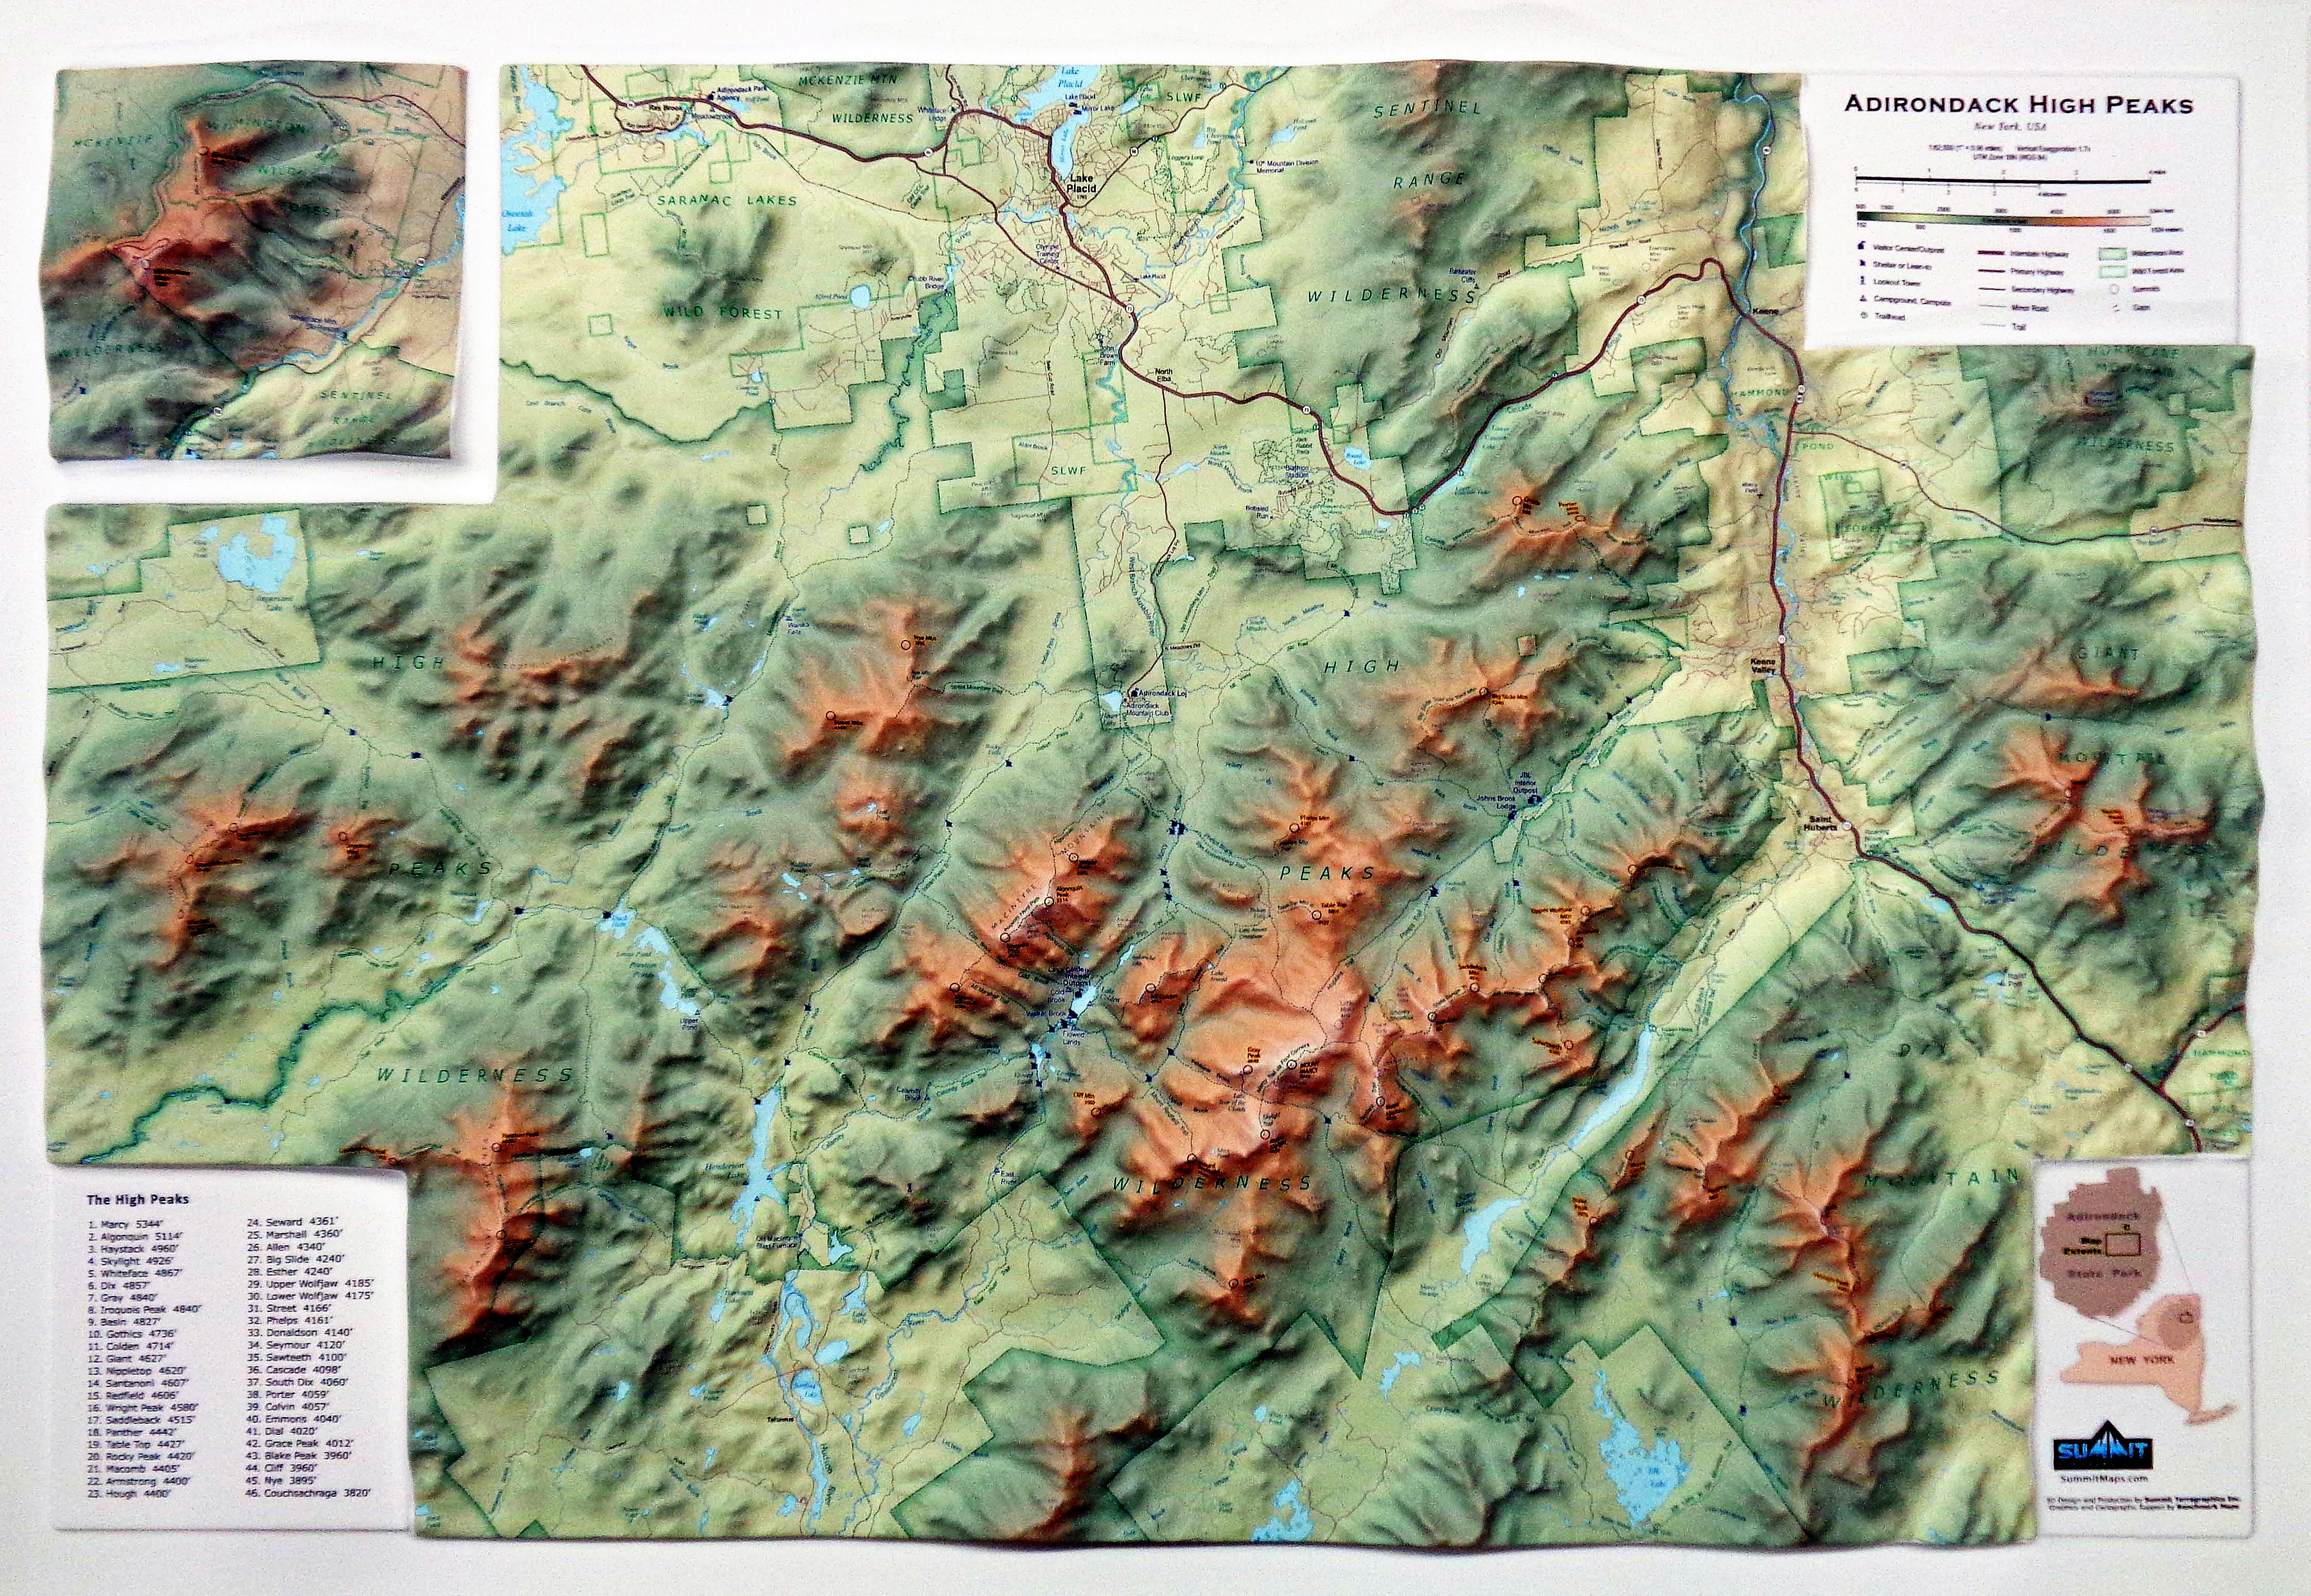 New Adirondack High Peaks Map Features the ADK 46ers in 3D